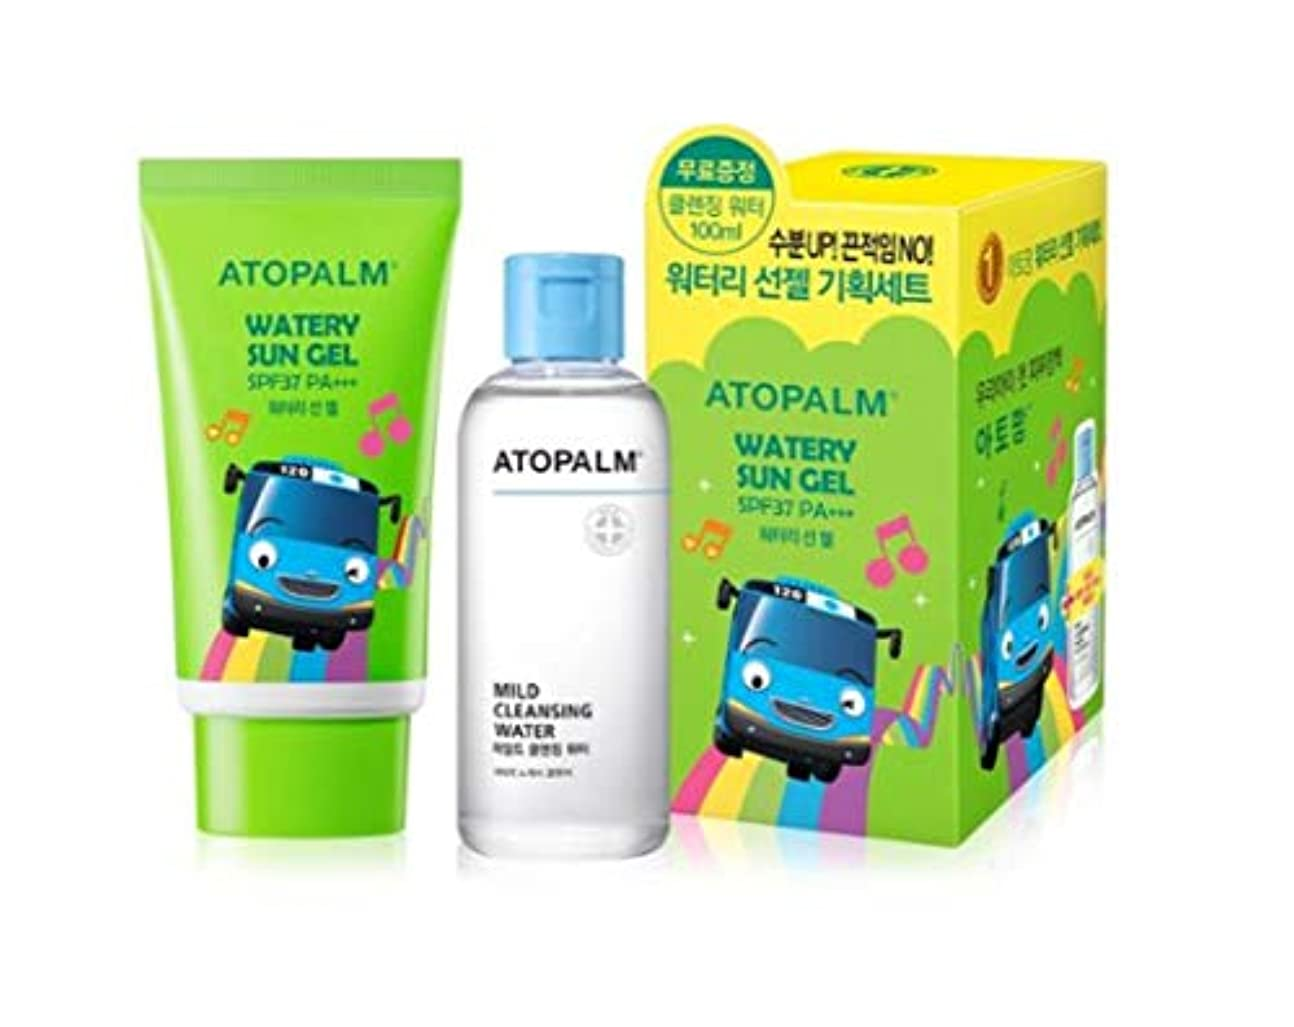 胸モンスター経済ATOPALM OUTDOOR Mild Sun Cream(EWG all green grade!)+ Cleansing Water100ml SPF32+ PA+++日焼け止めパーフェクトUVネック?手?足の甲?...